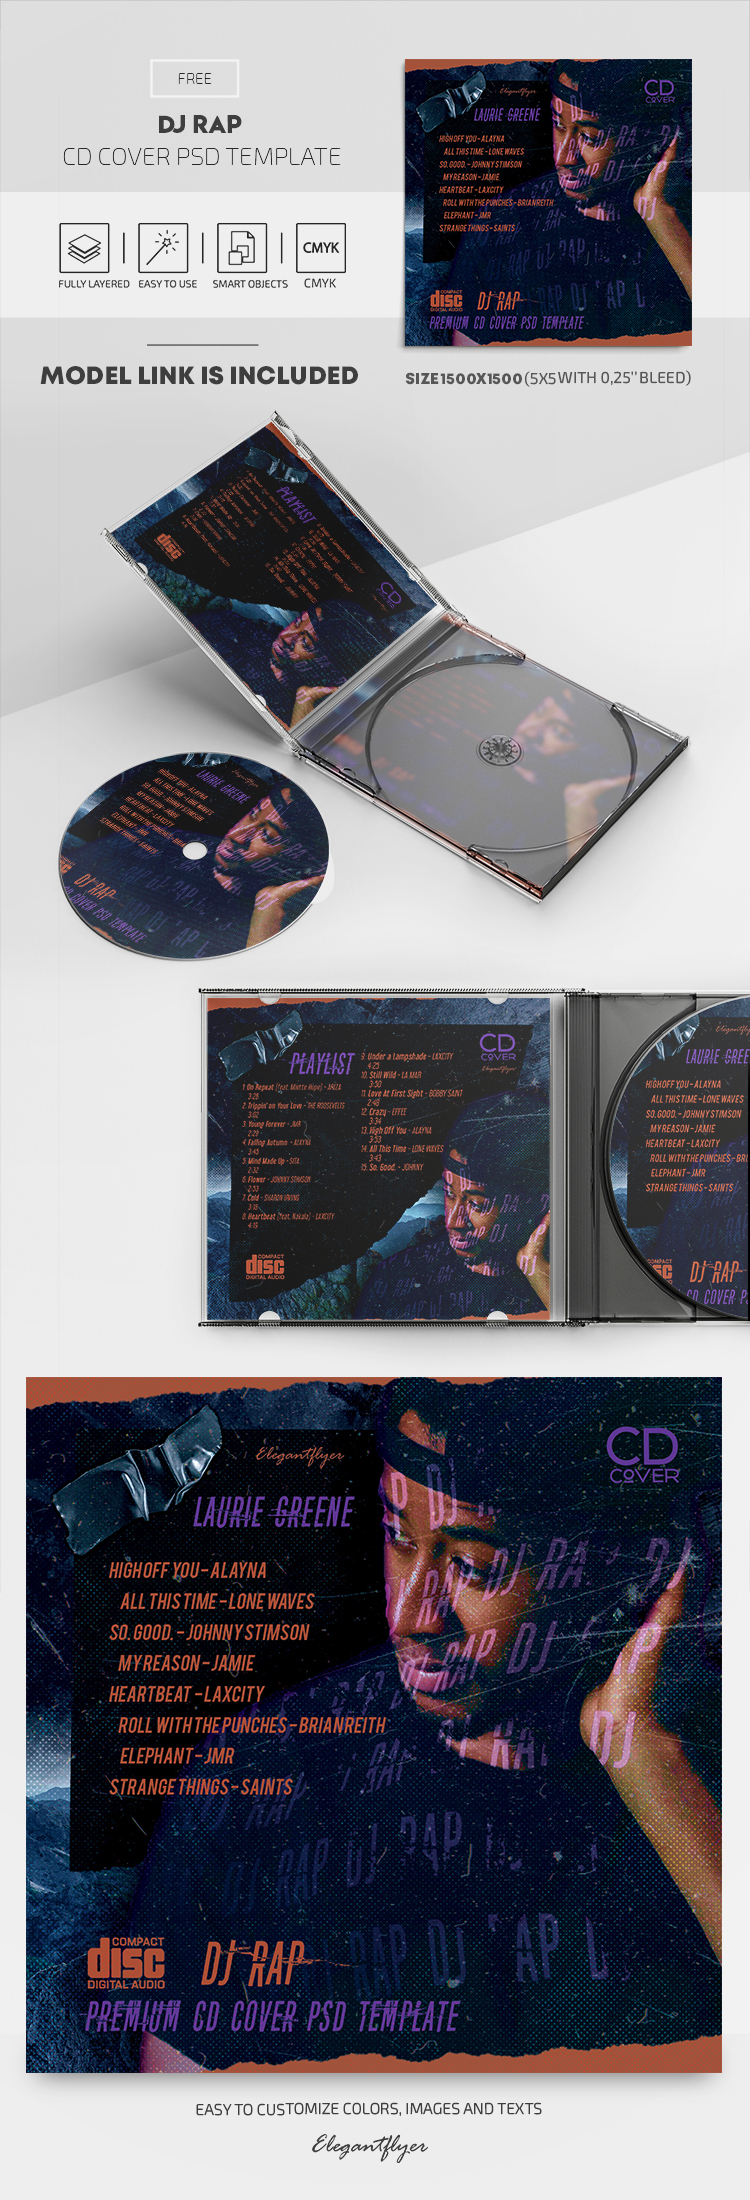 DJ Rap – Free CD Cover PSD Template